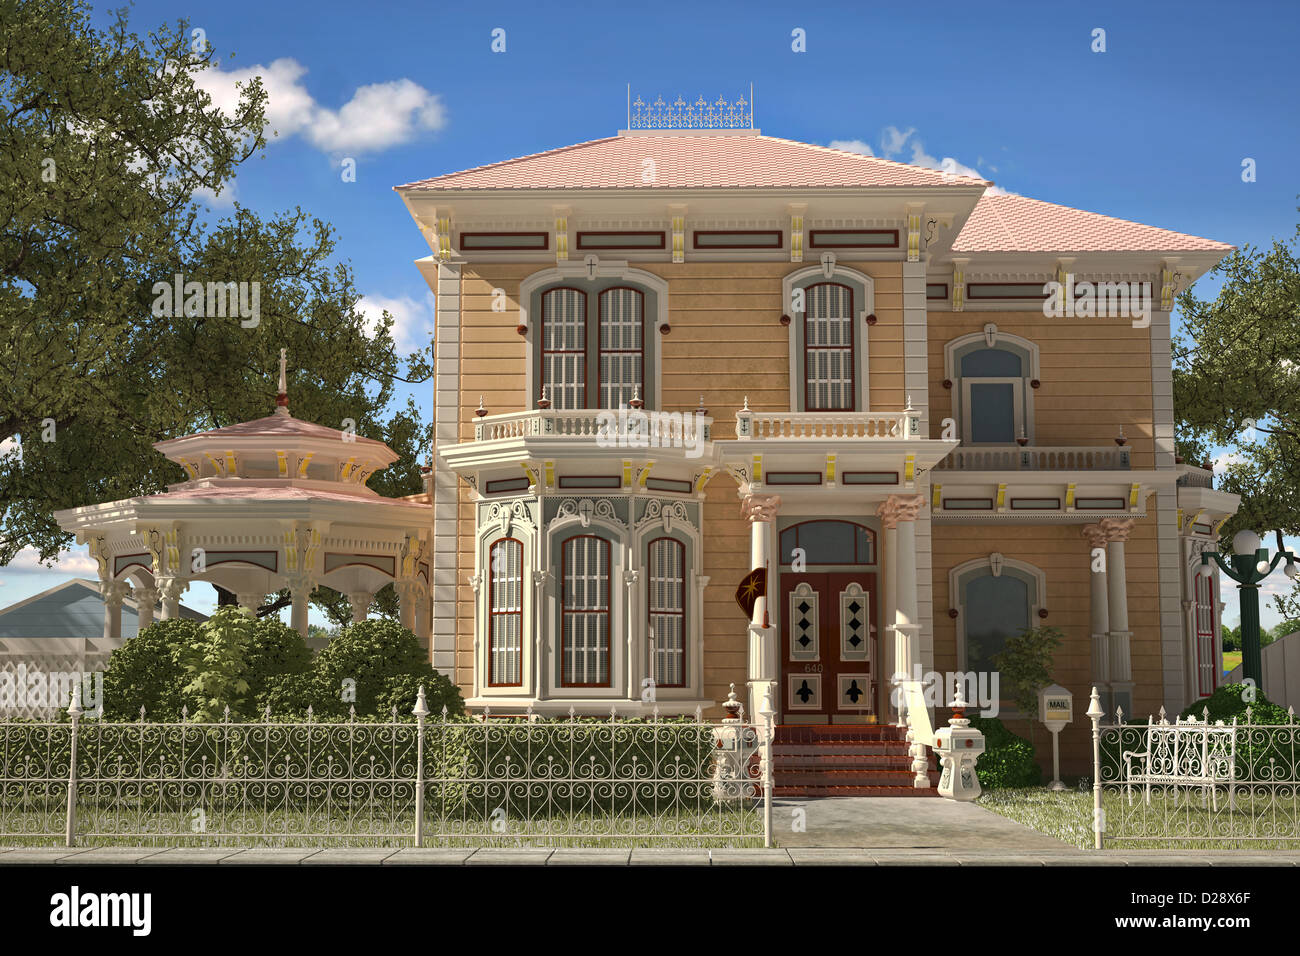 Luxury Victorian style house exterior. Frontal view, with gazebo and garden. - Stock Image